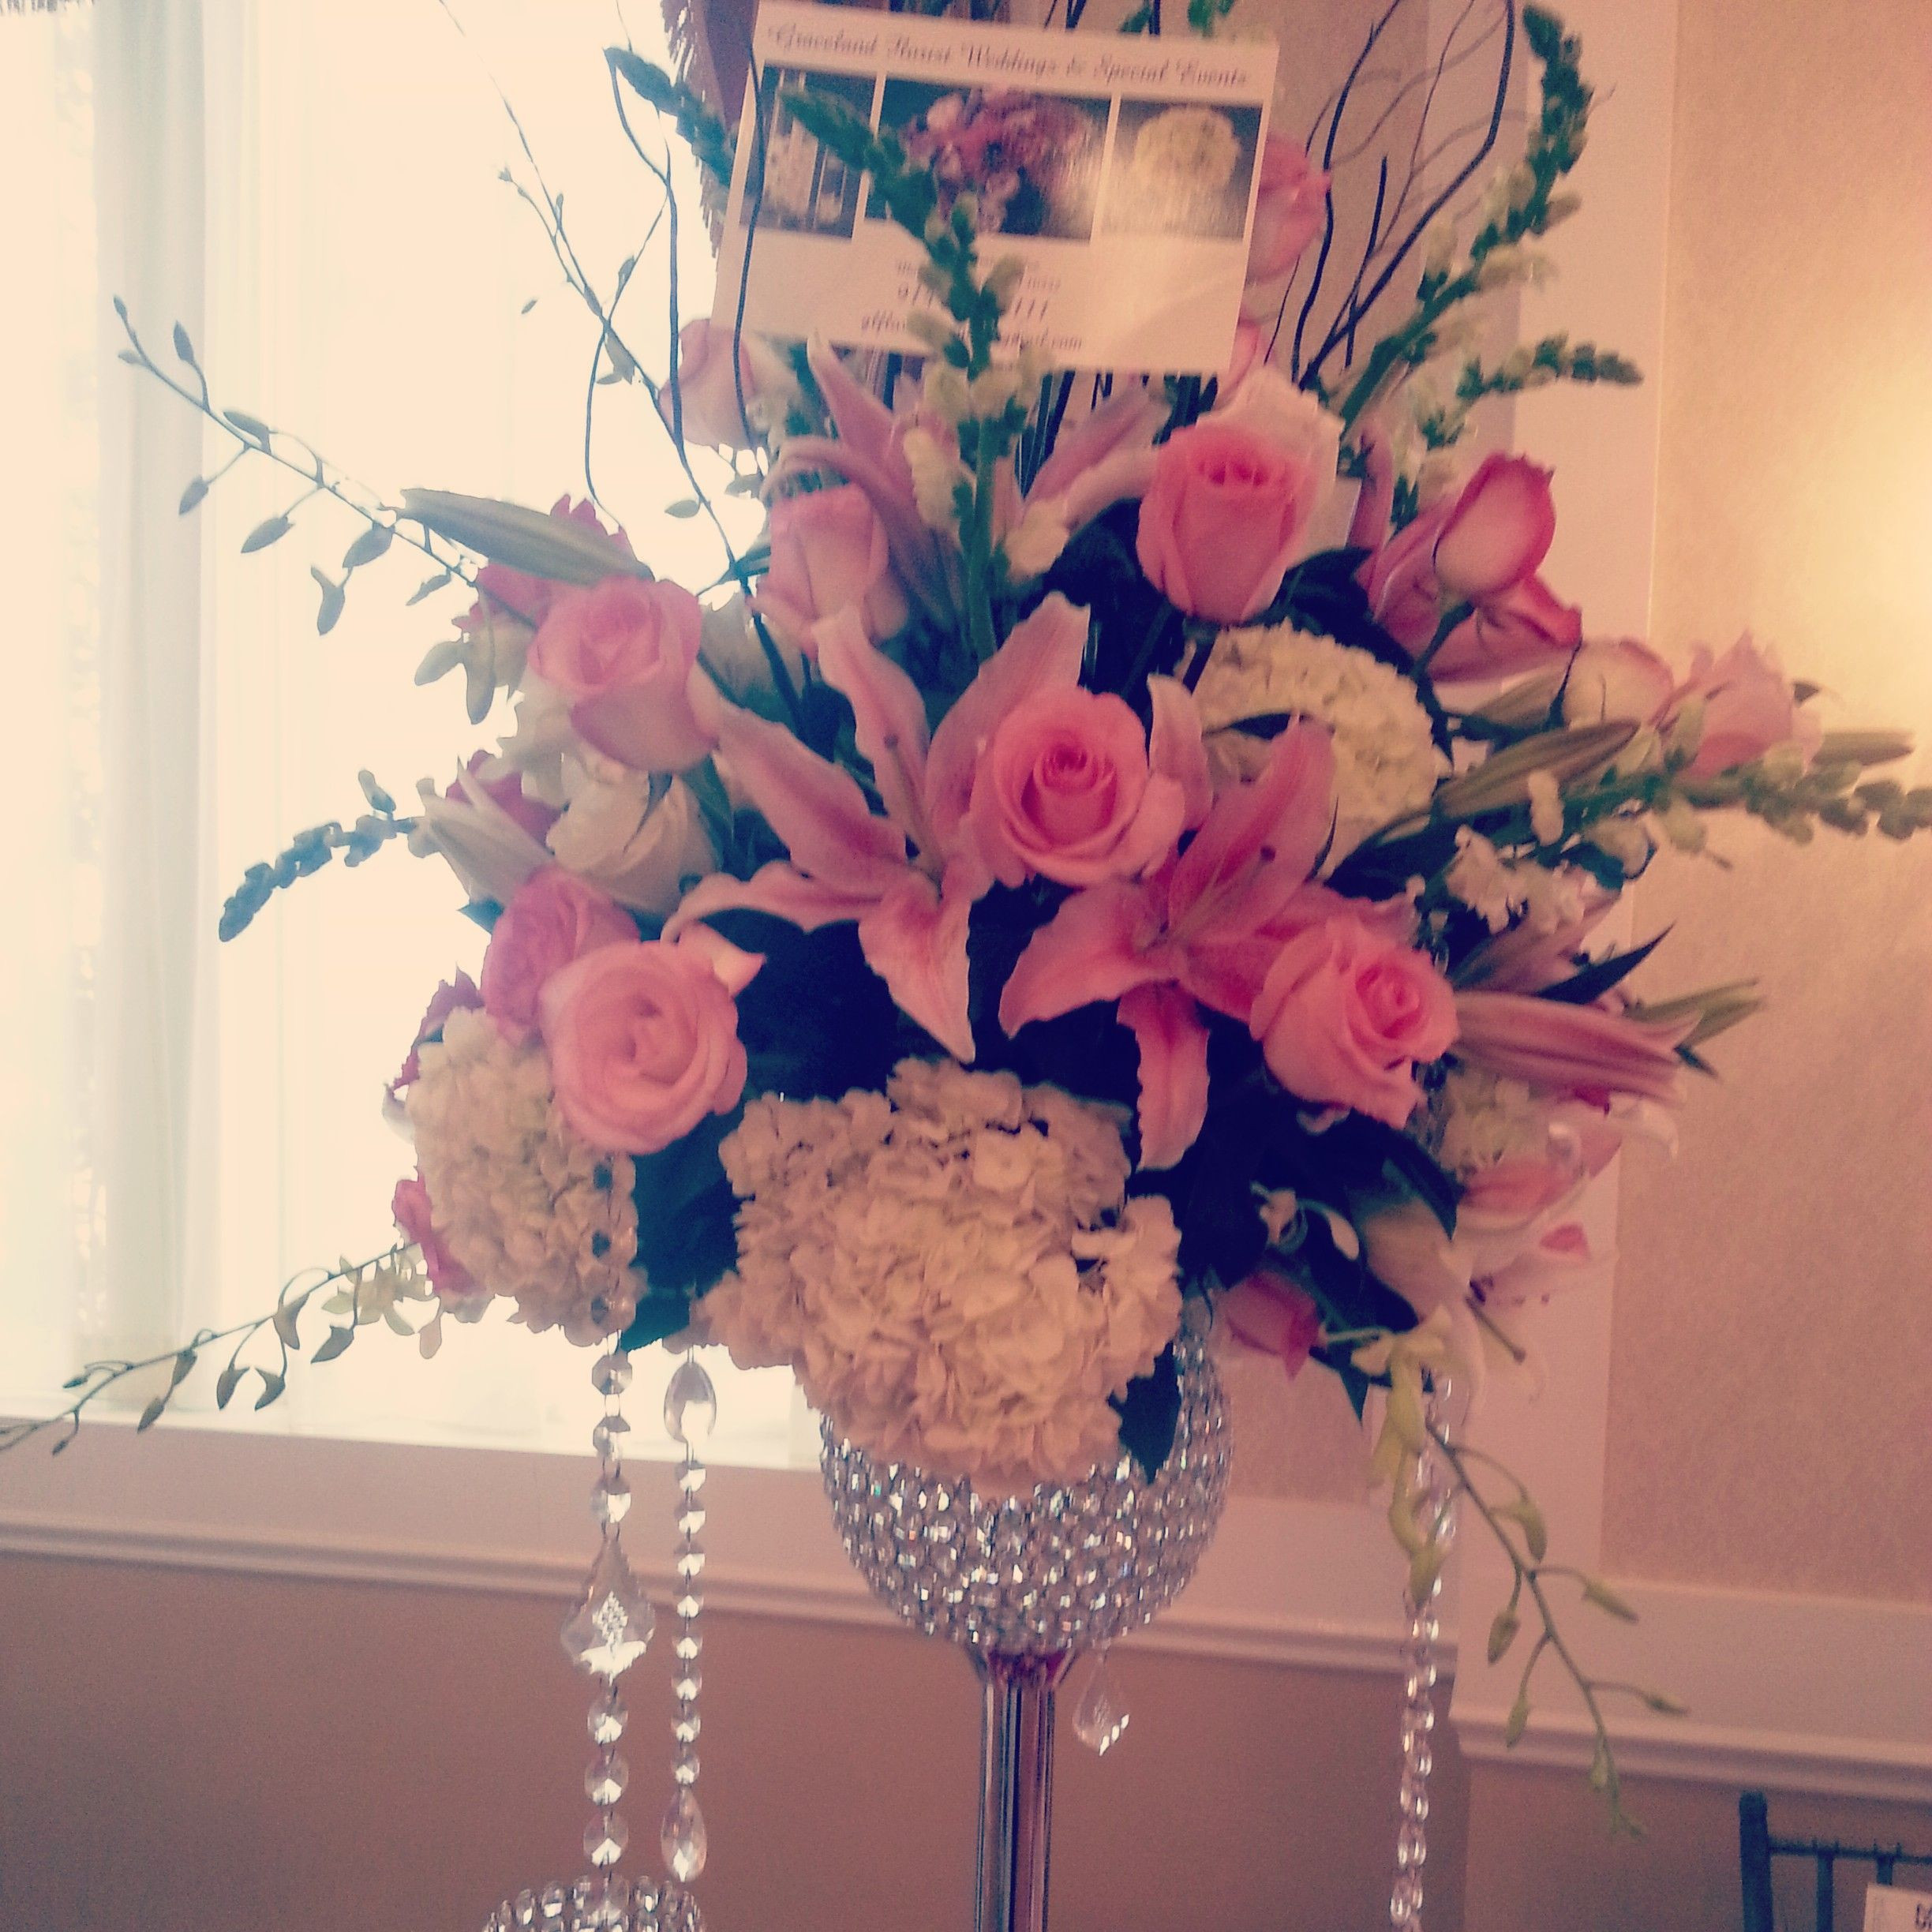 Stargazer lily wedding centerpiece with pink roses white hydrangea snap dragons and dendro